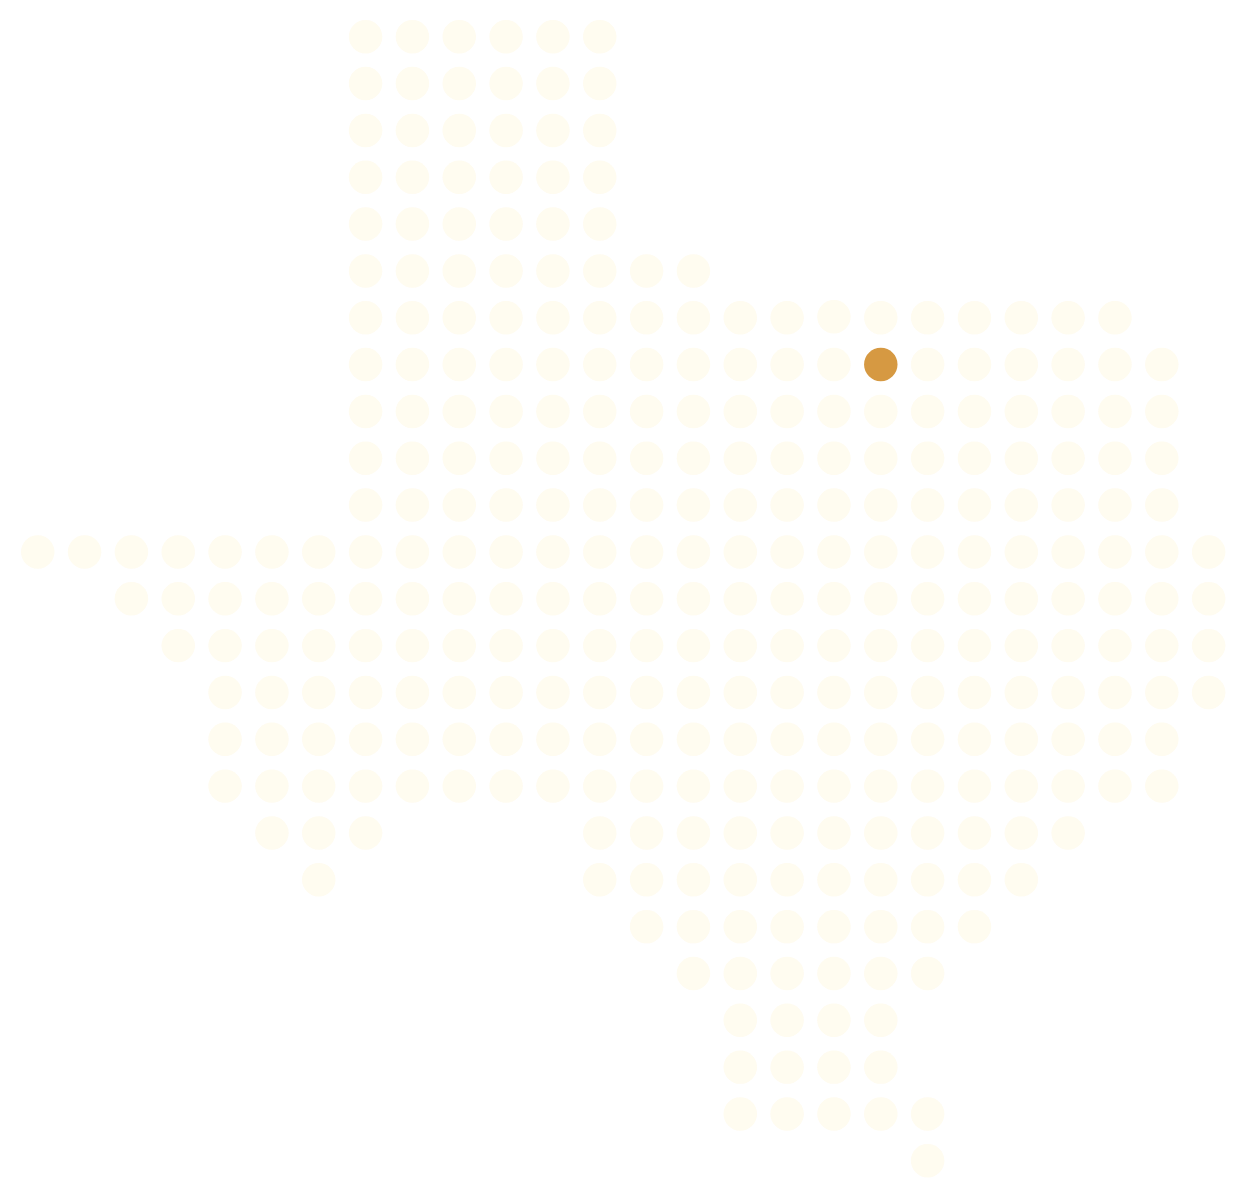 north-texas-service-areas-denton-white.png